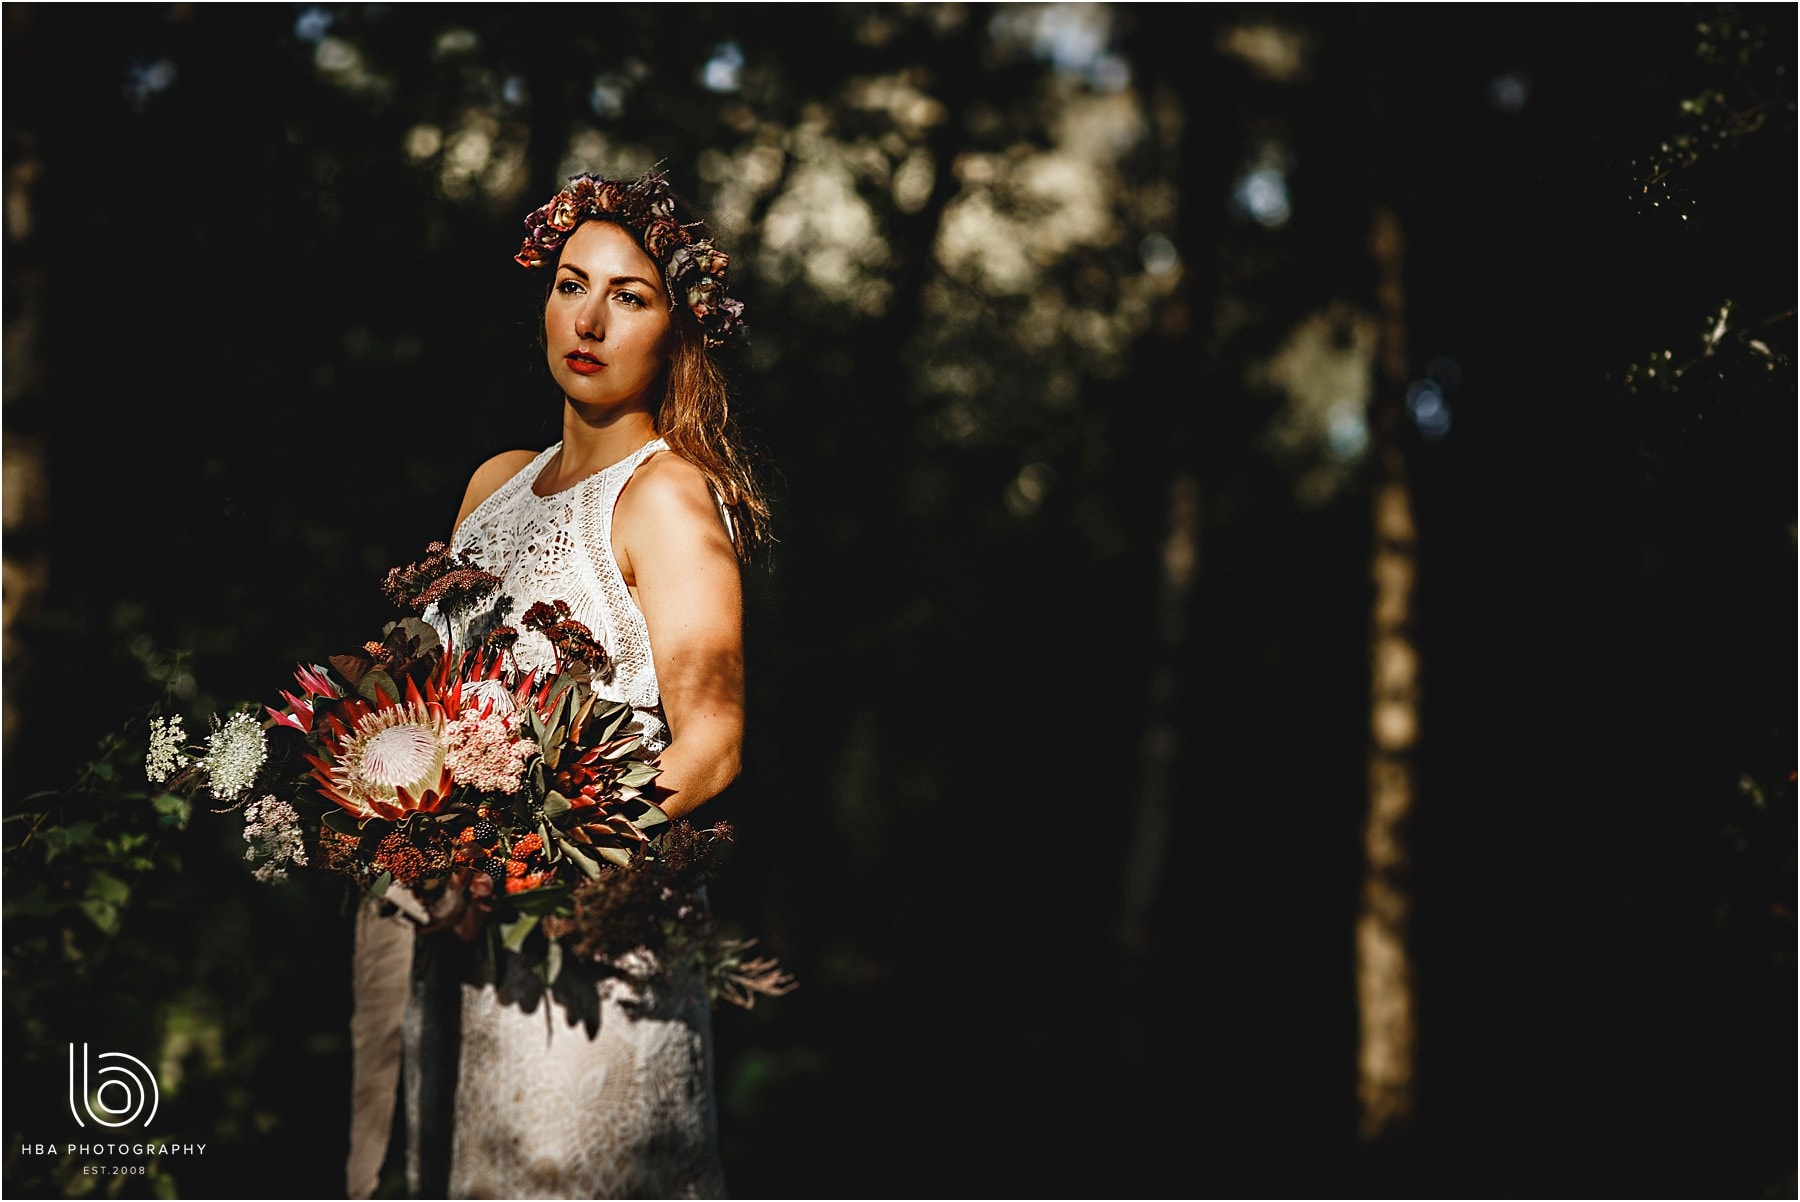 The bride and dappled sunlight in the woods